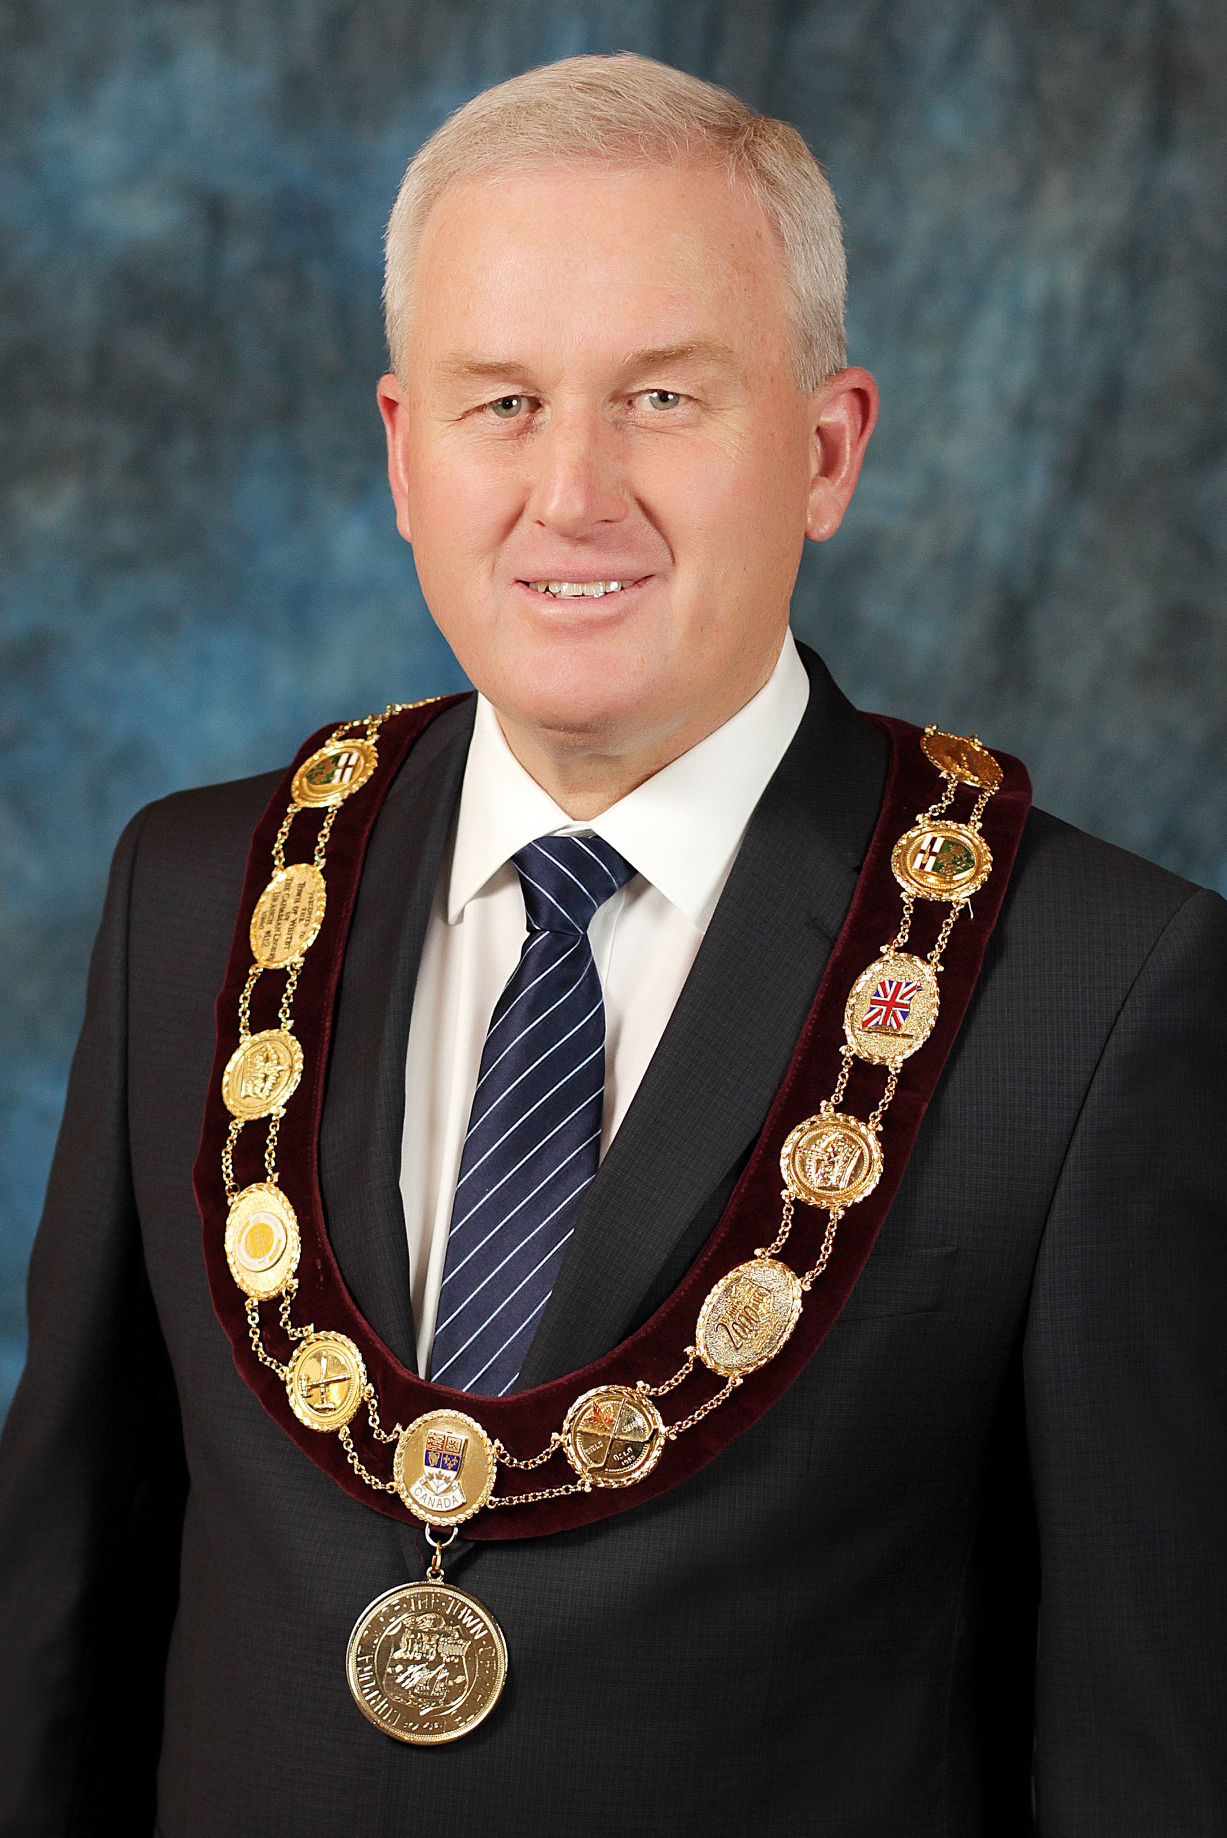 Mayor Don Mitchell